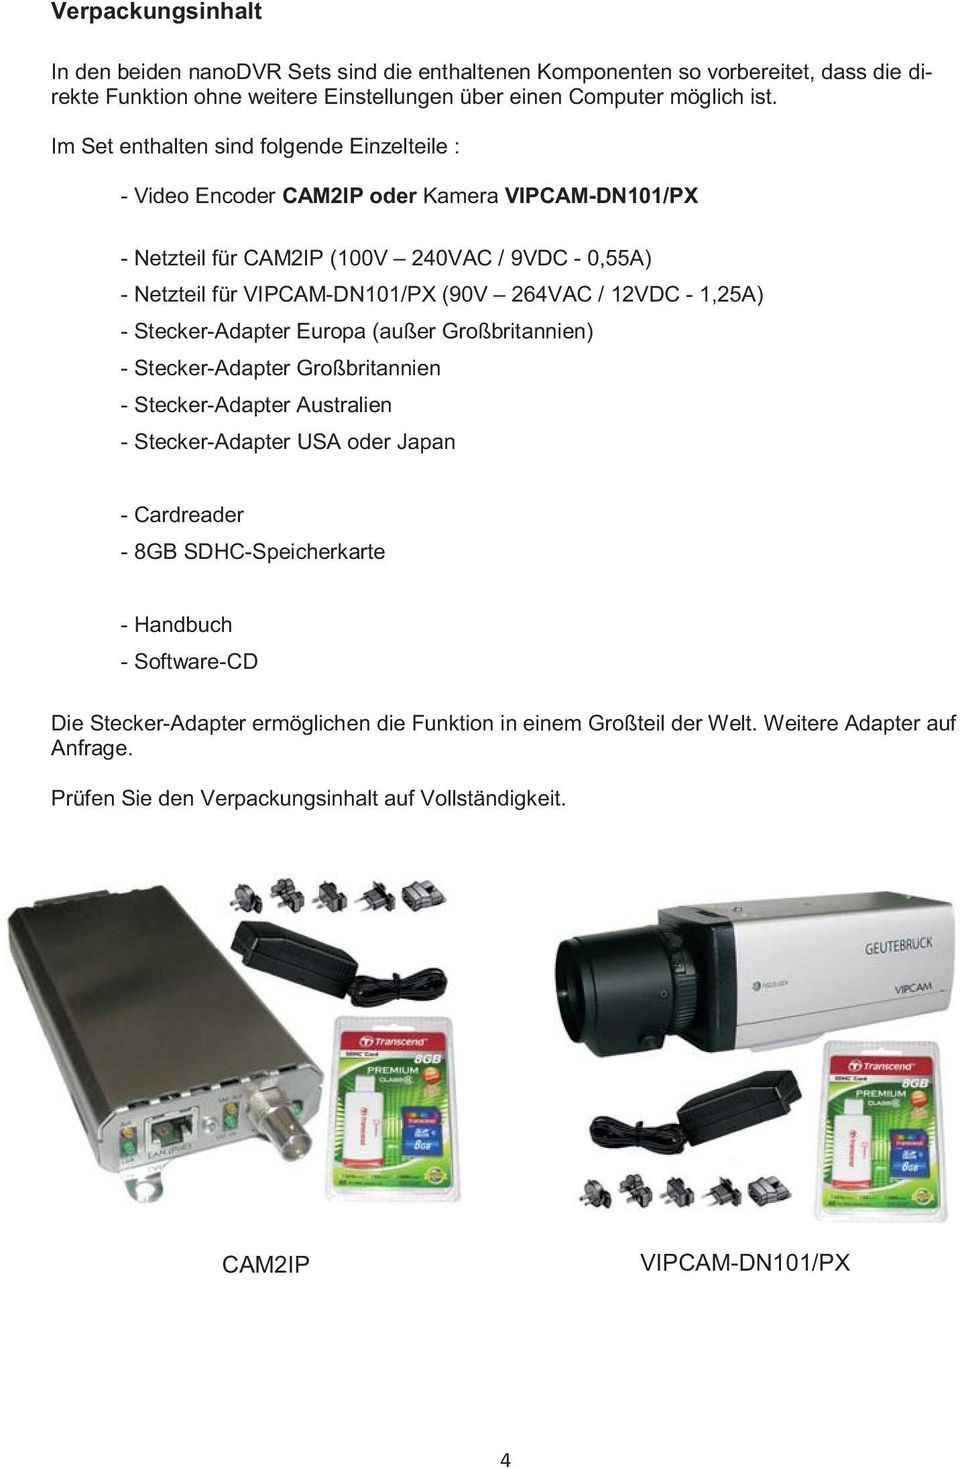 vipcam software